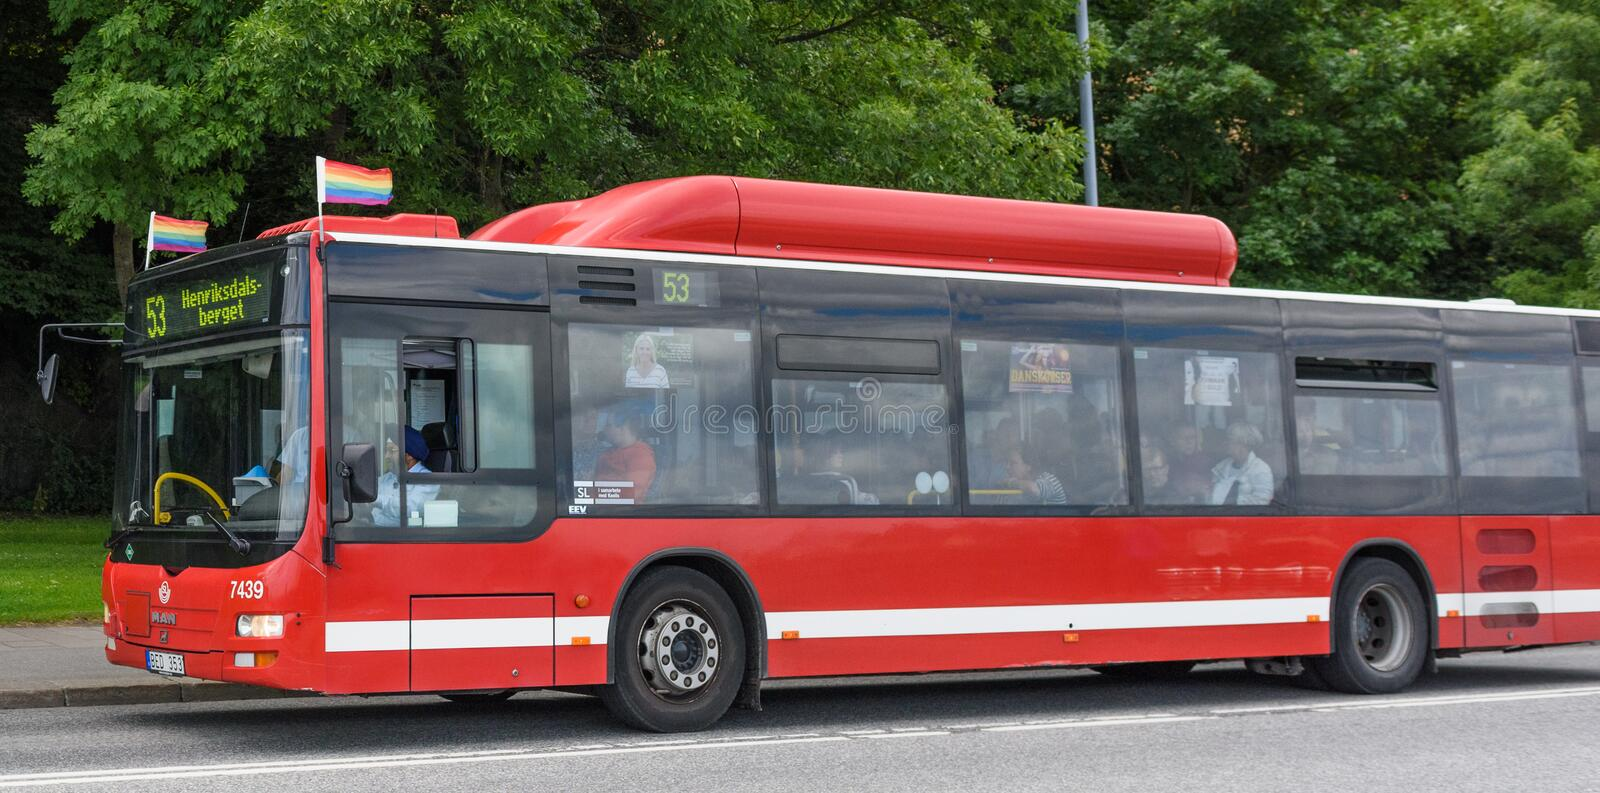 Red bus with pride flags. Stockholm, Sweden - July 27, 2015: Red bus in traffic for SL traffic on line 53 with the destination Henriksdalsberget, with pride stock photography